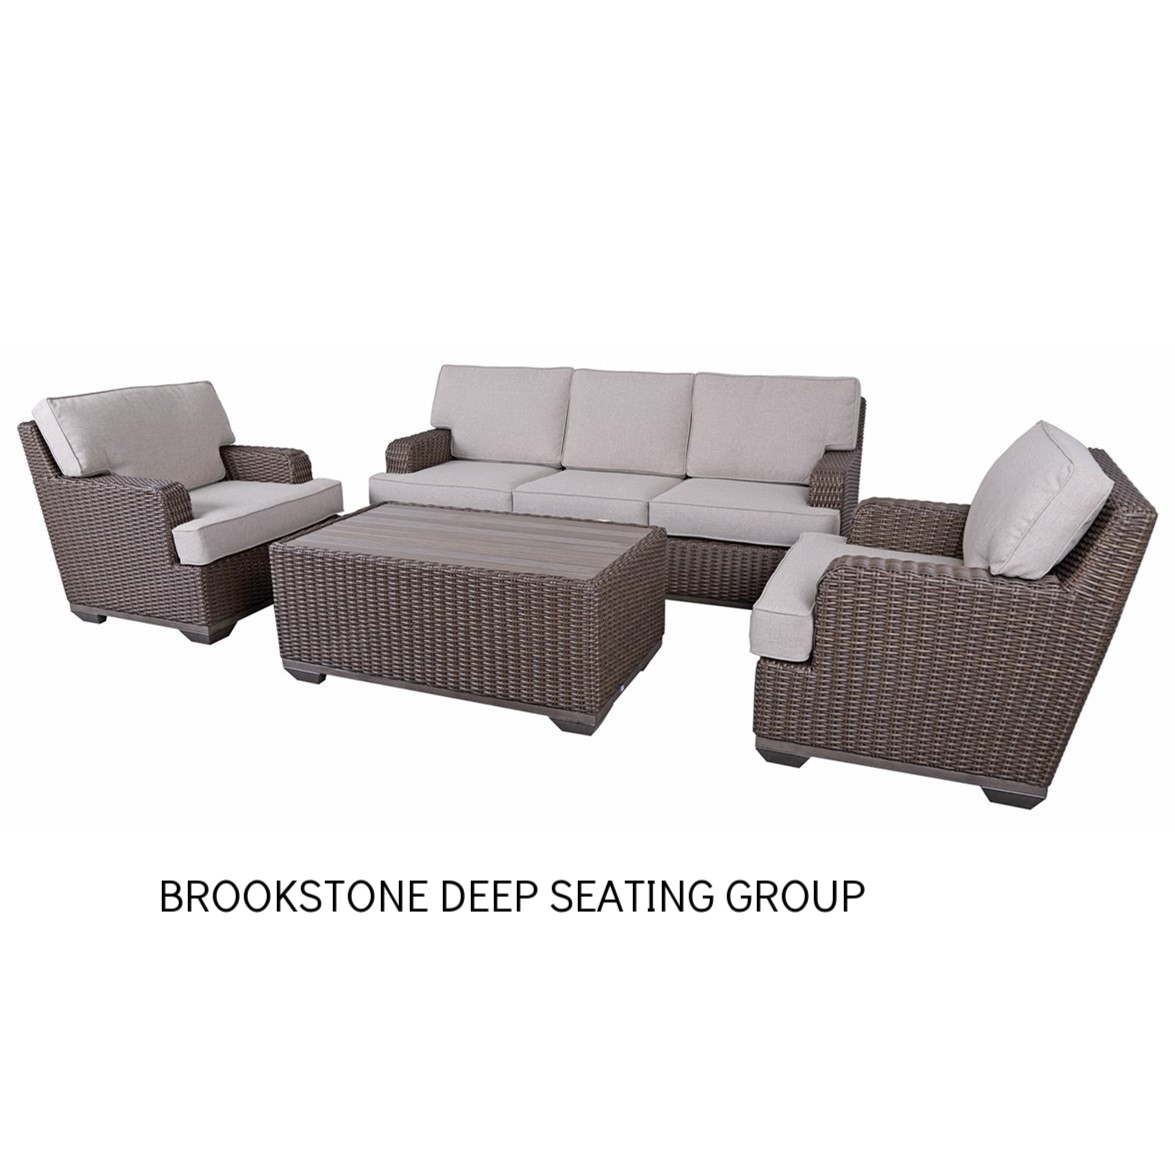 GATHERCRAFT 2018 BROOKSTONE WOVEN DEEP SEATING (Clipped Set).jpg